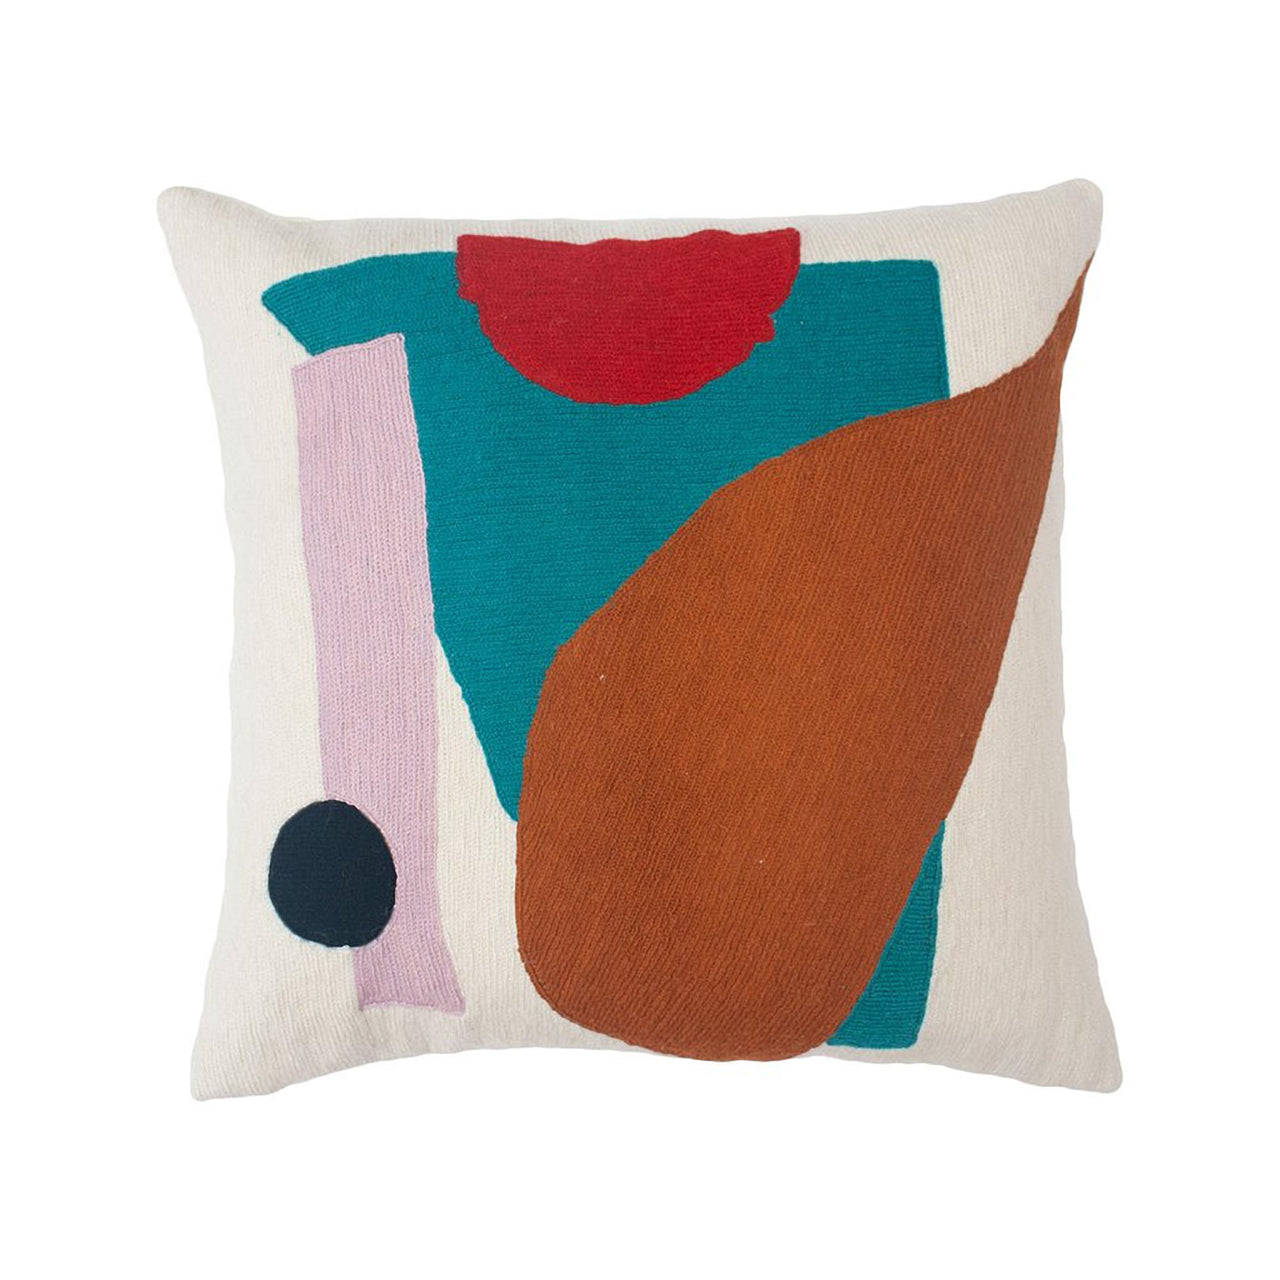 Blah Blah Shapes Pillow